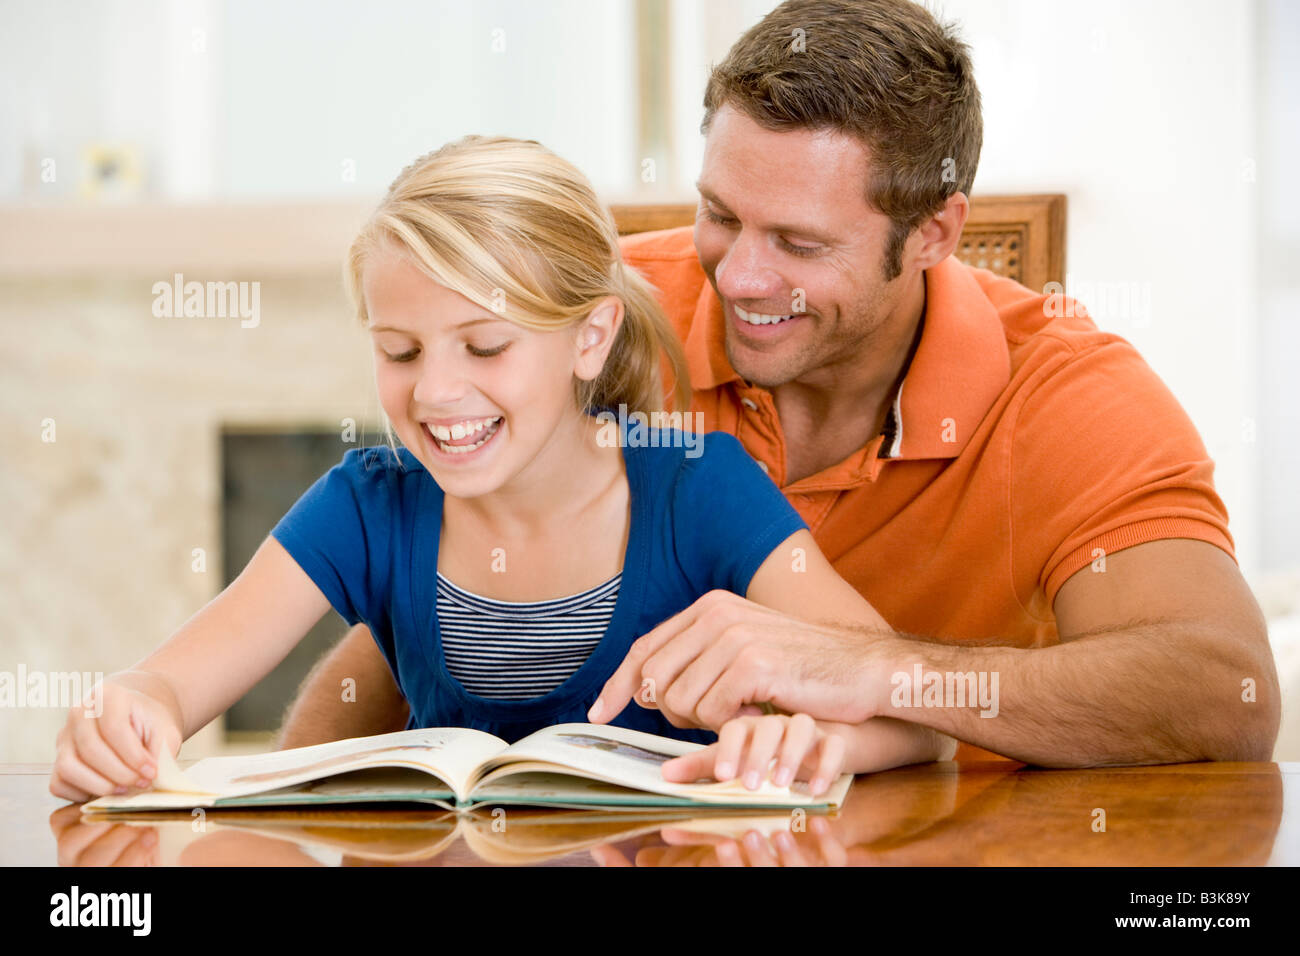 Man and young girl reading book in dining room smiling - Stock Image